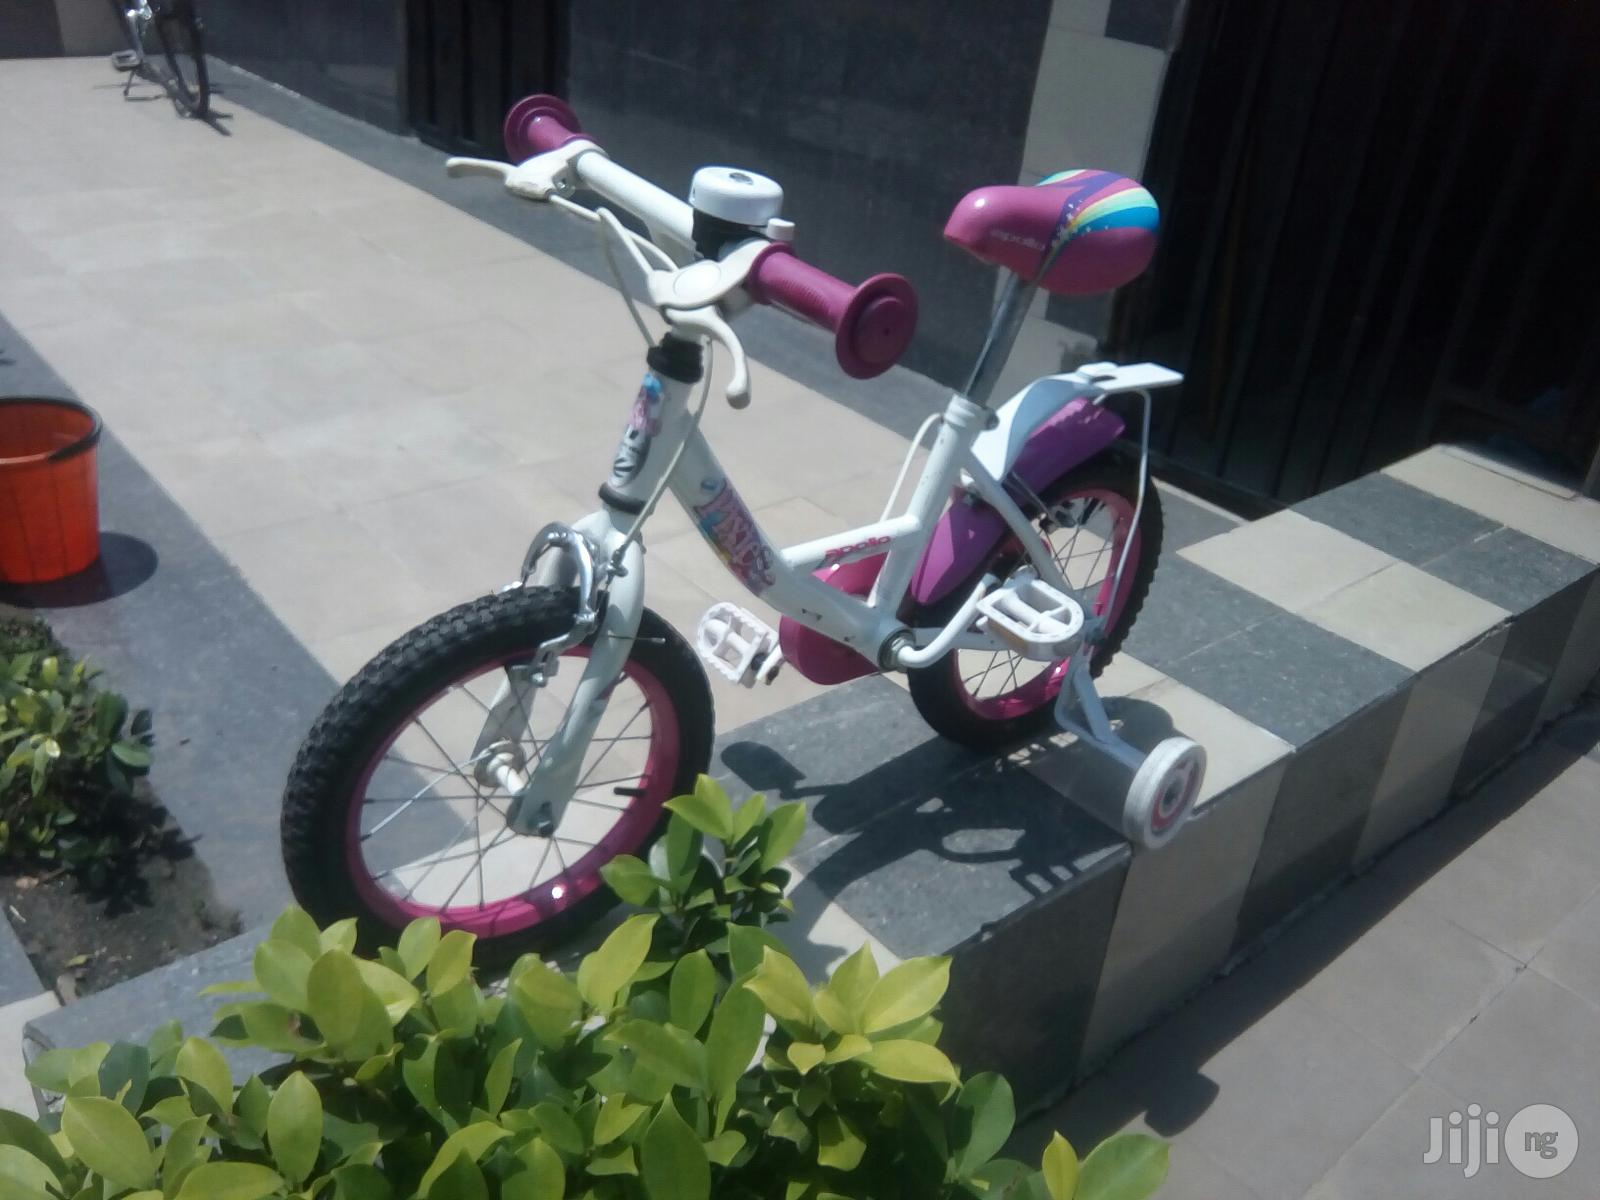 Apollo Pixie Children Bicycle   Toys for sale in Port-Harcourt, Rivers State, Nigeria